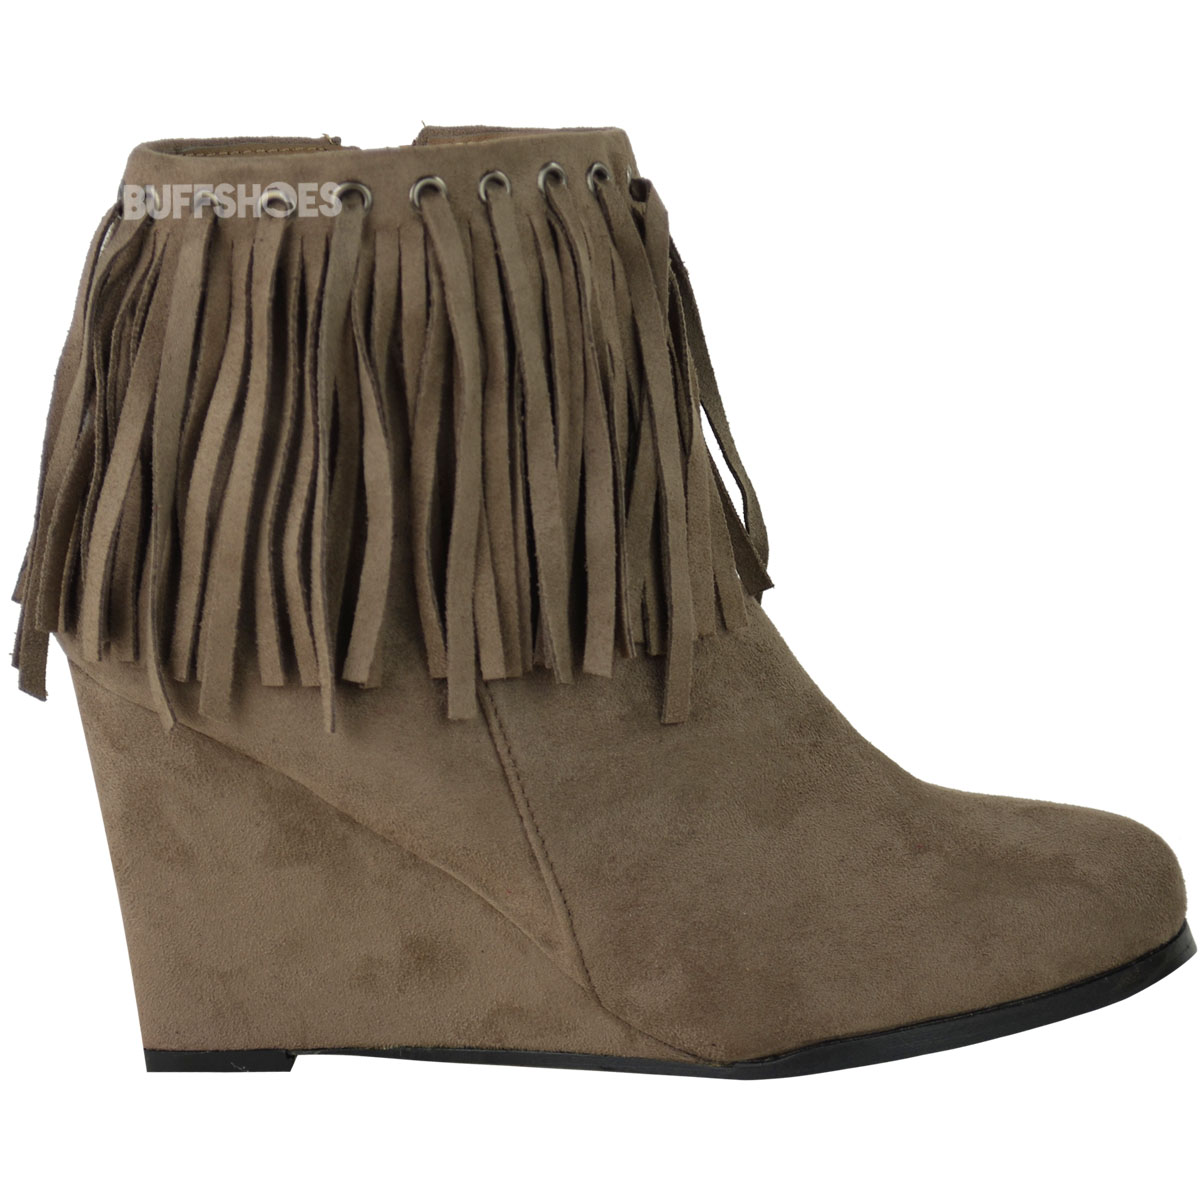 WOMENS LADIES WEDGE ANKLE BOOTS TASSEL FRINGE CHELSEA LOW MID HEEL ...